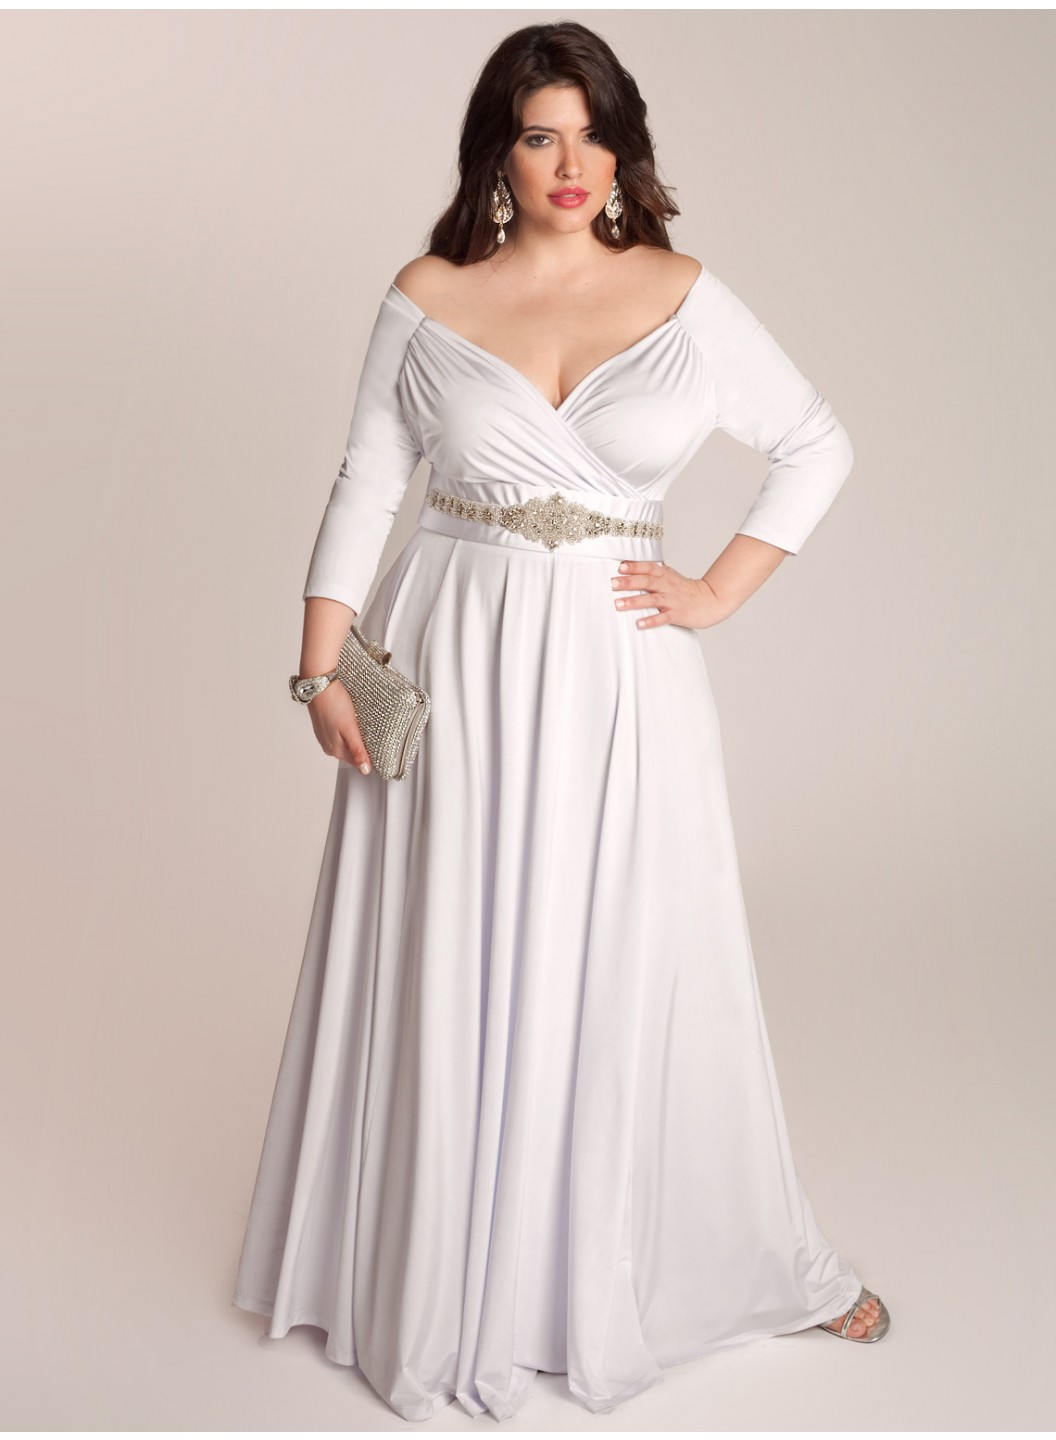 Plus size wedding dresses from 10 of the top plus size wedding dress plus size wedding dress ombrellifo Image collections